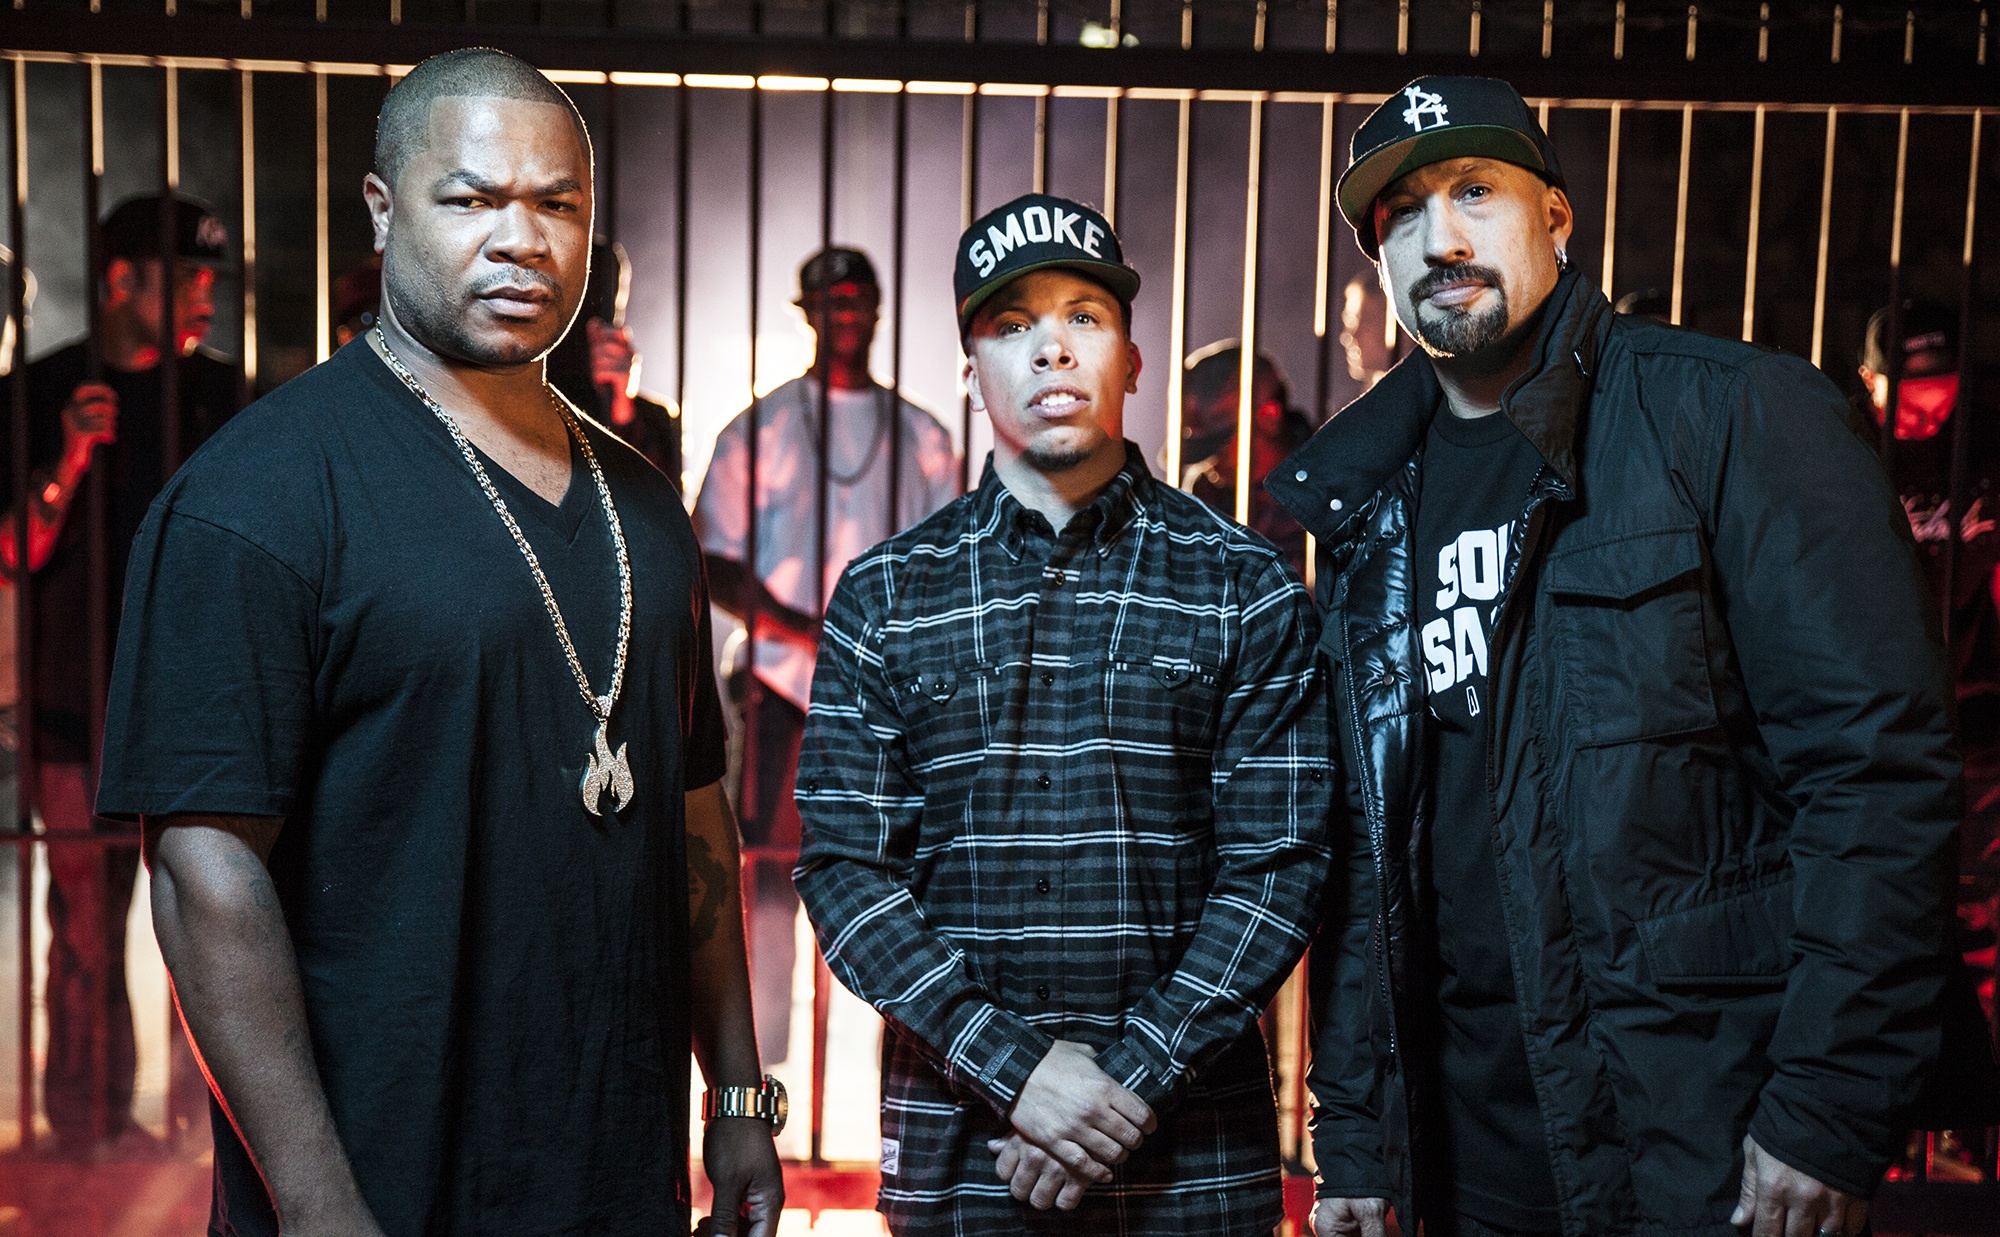 Meet The Serial Killers: Xzibit, B-Real and Demrick Form L.A. Union